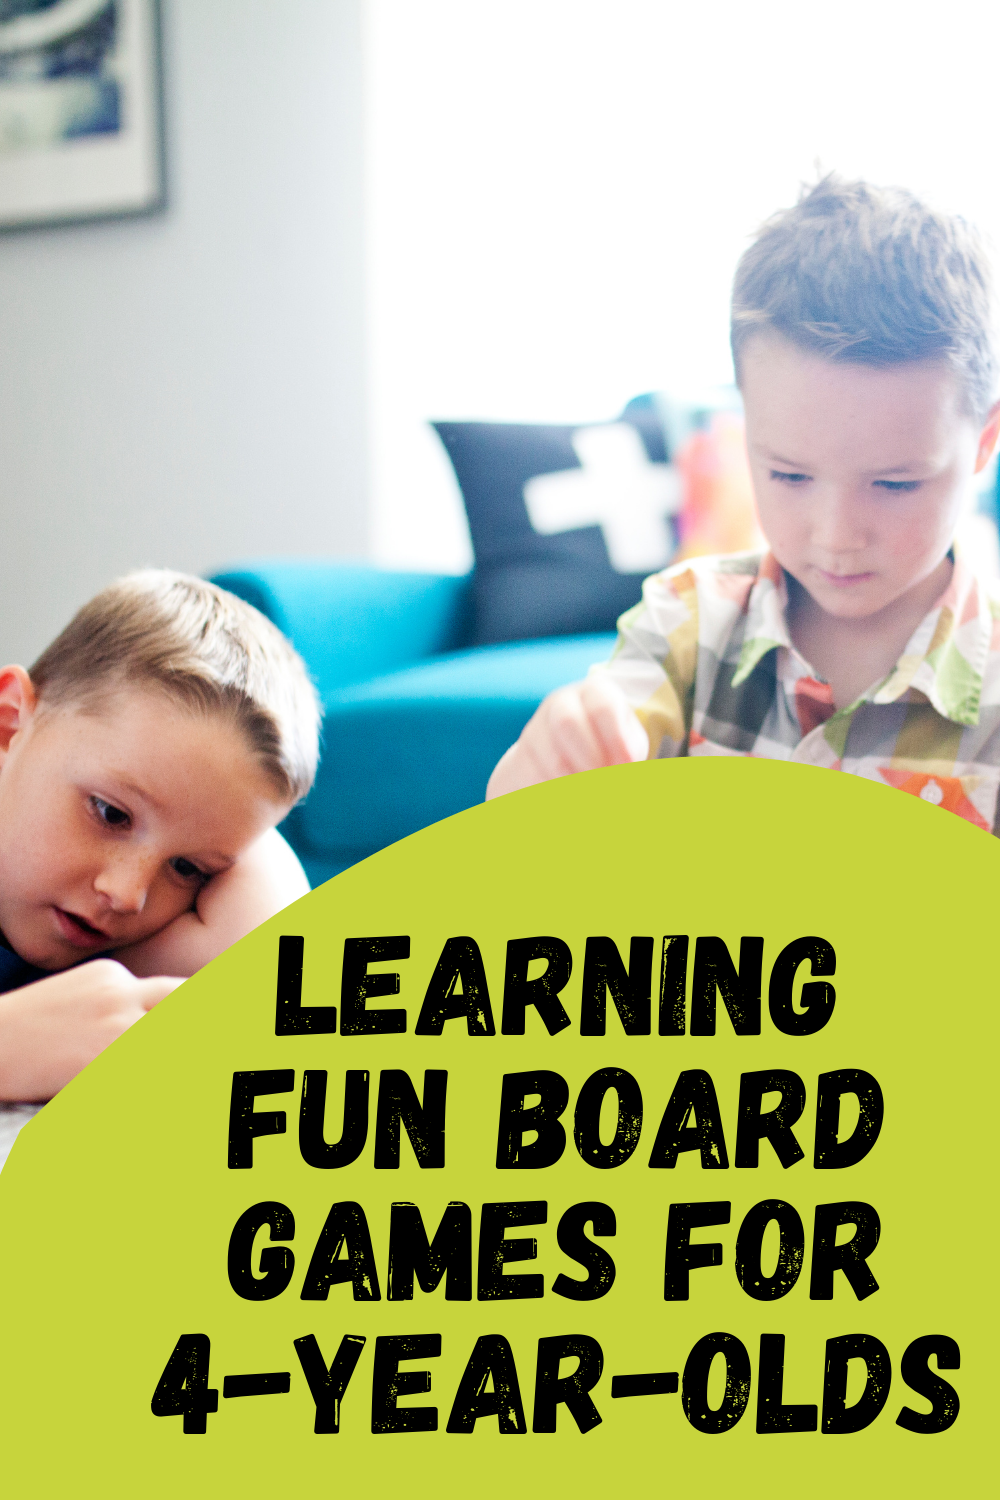 Board Games for 4-Year-Olds